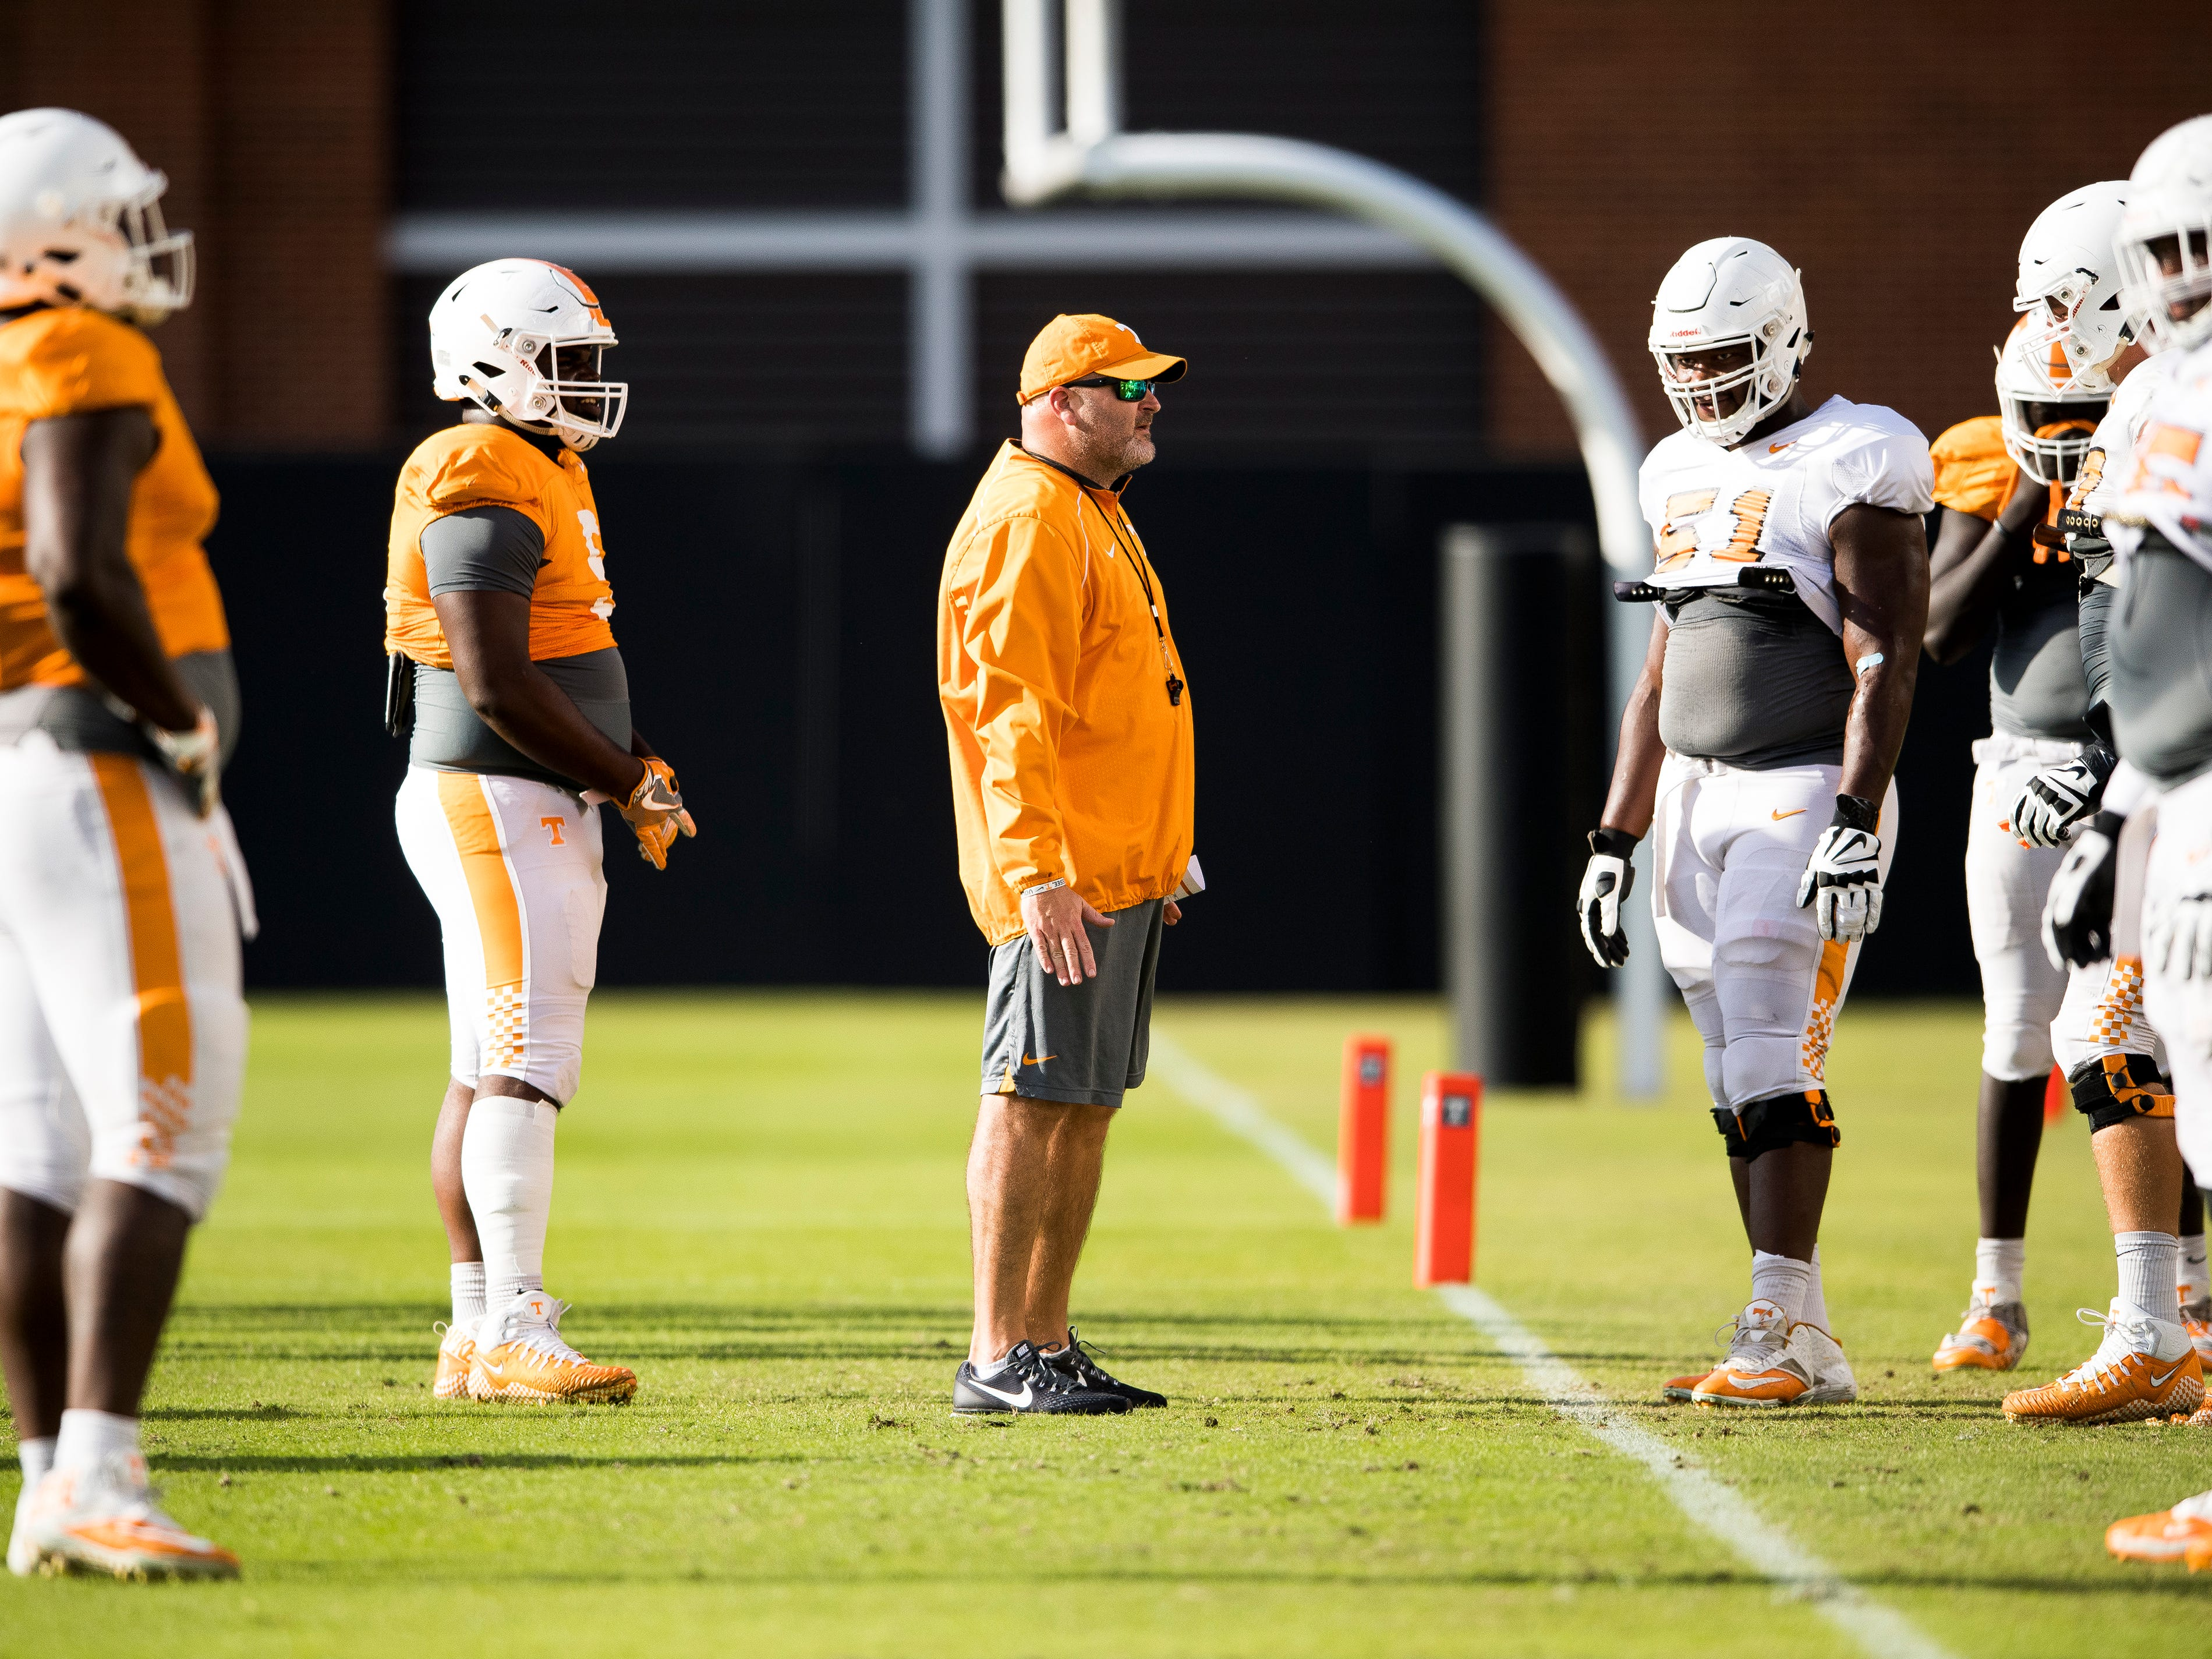 Tennessee offensive line coach Will Friend, center, during Tennessee's afternoon football practice on campus on Tuesday, October 23, 2018.